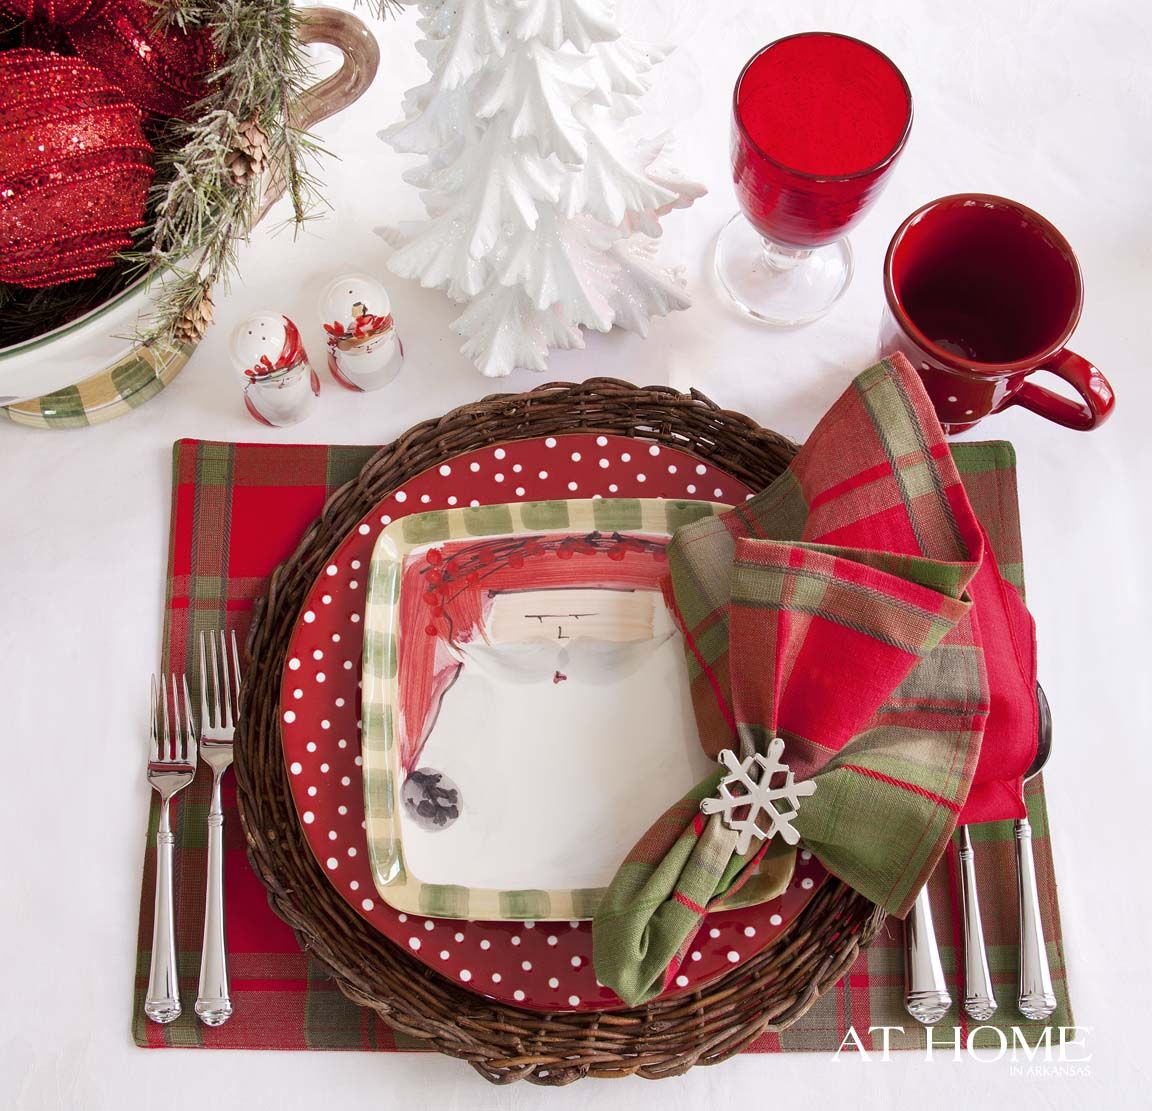 Set The Table In Seasonal Style